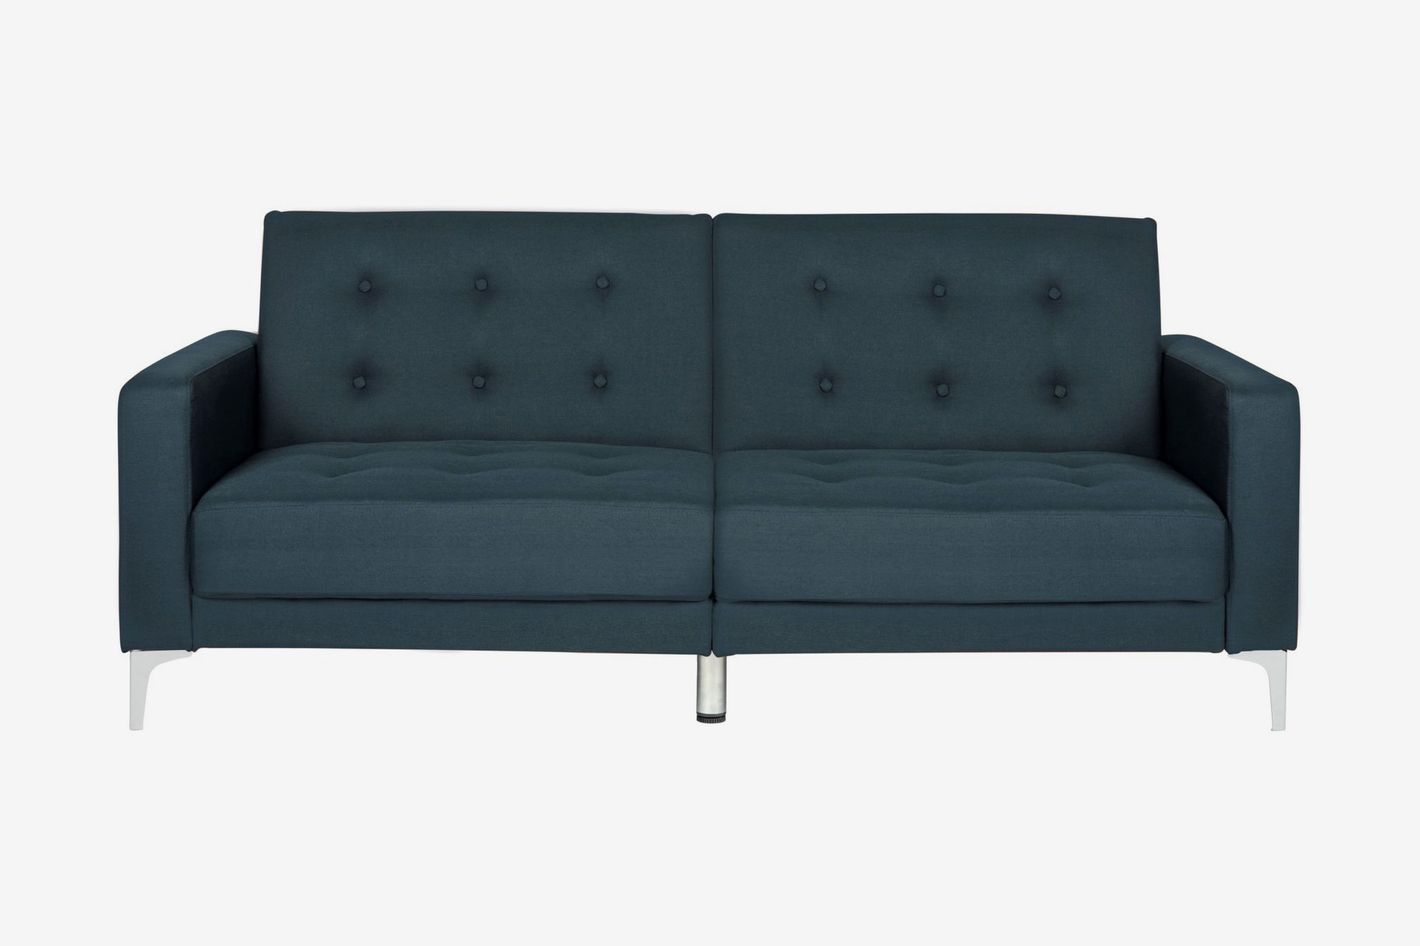 Jayde Foldable Sleeper Sofa